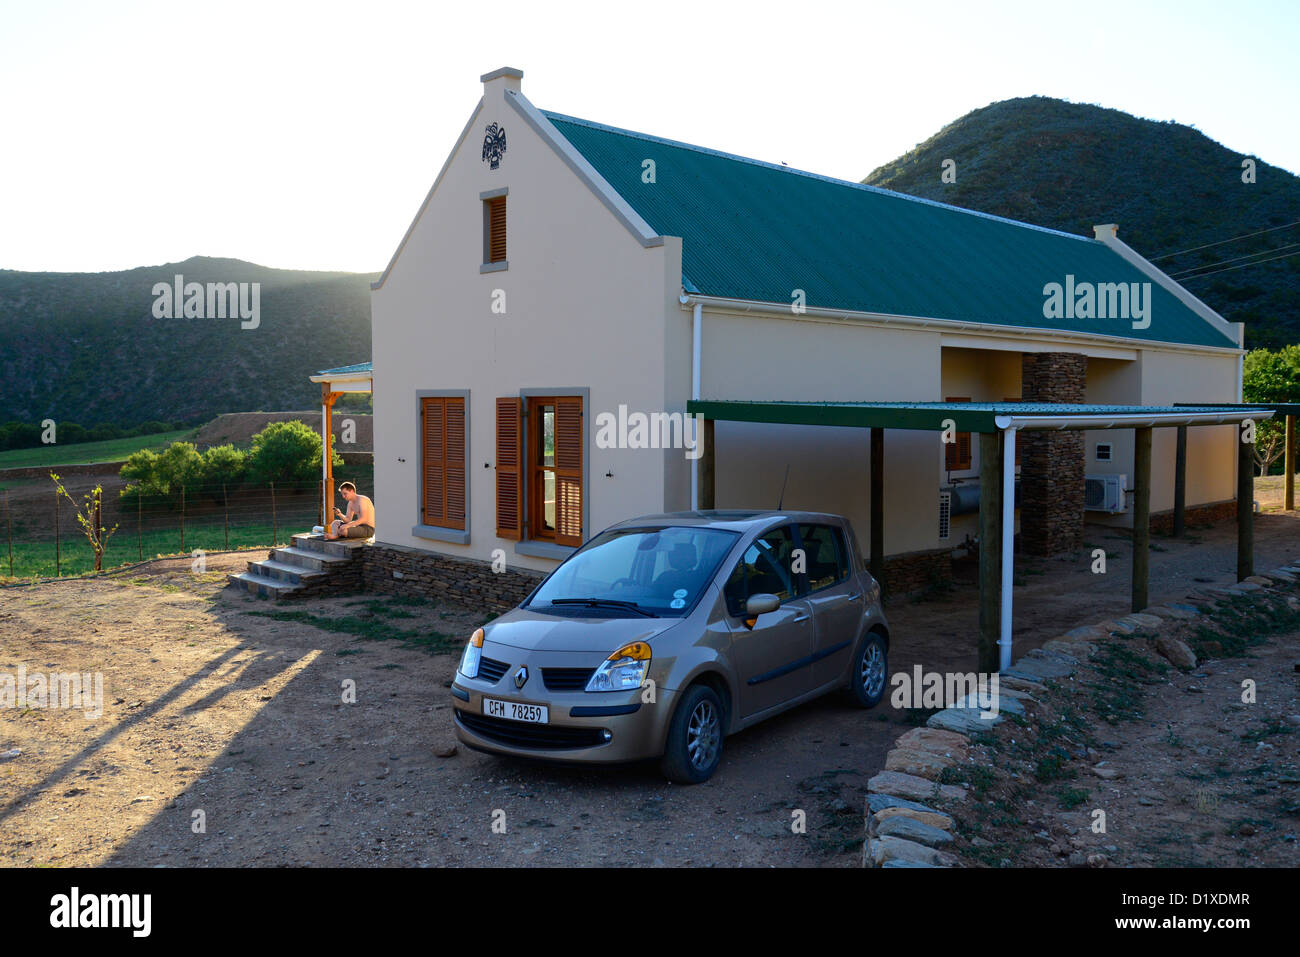 Cream cottage with green roof, car in foreground, mountains at sunset in the Klein Karoo, South Africa - Stock Image